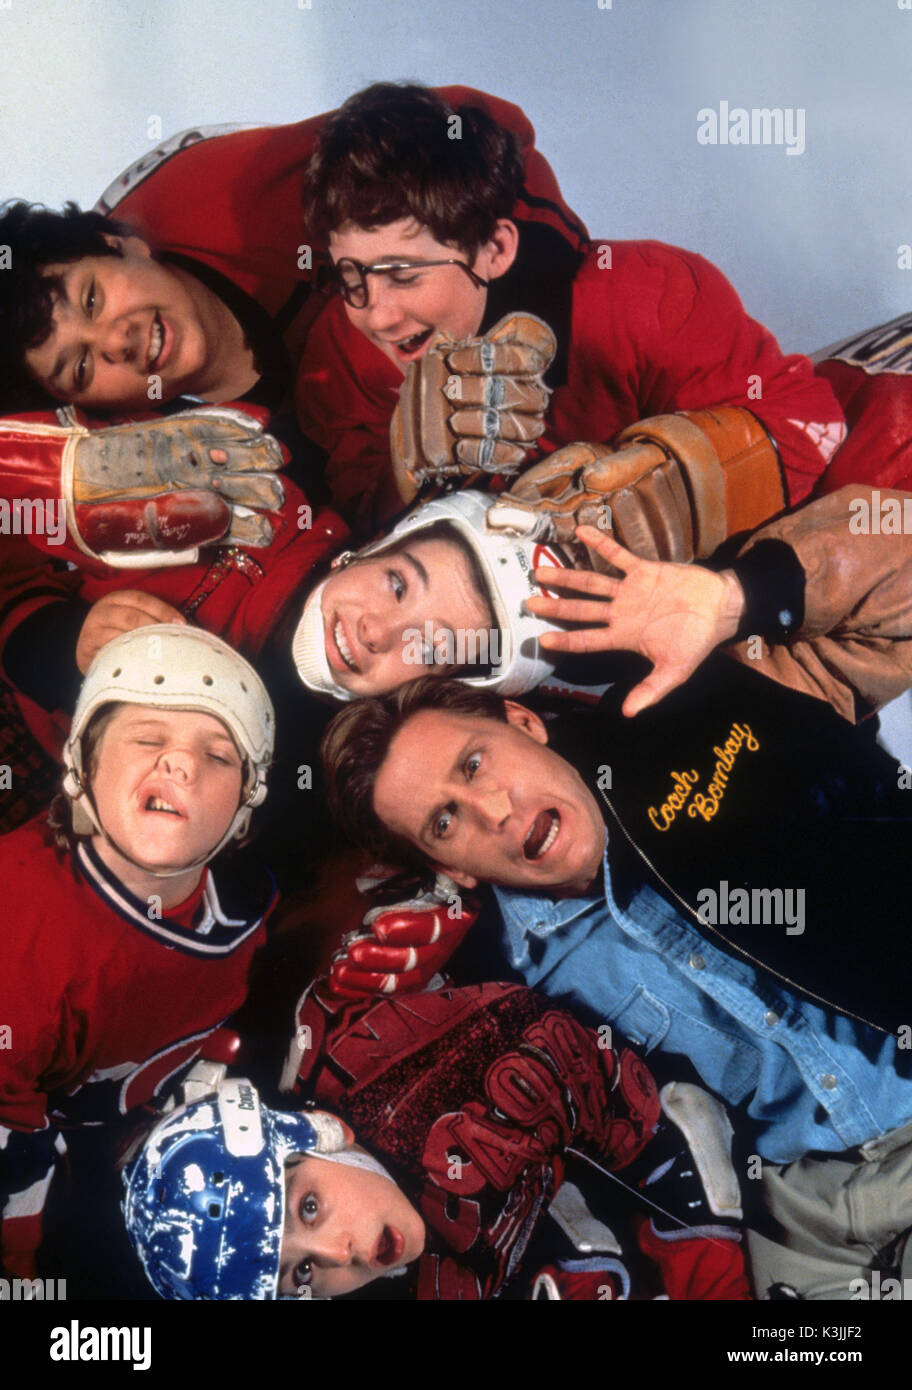 THE MIGHTY DUCKS EMILIO ESTEVEZ     Date: 1992 - Stock Image